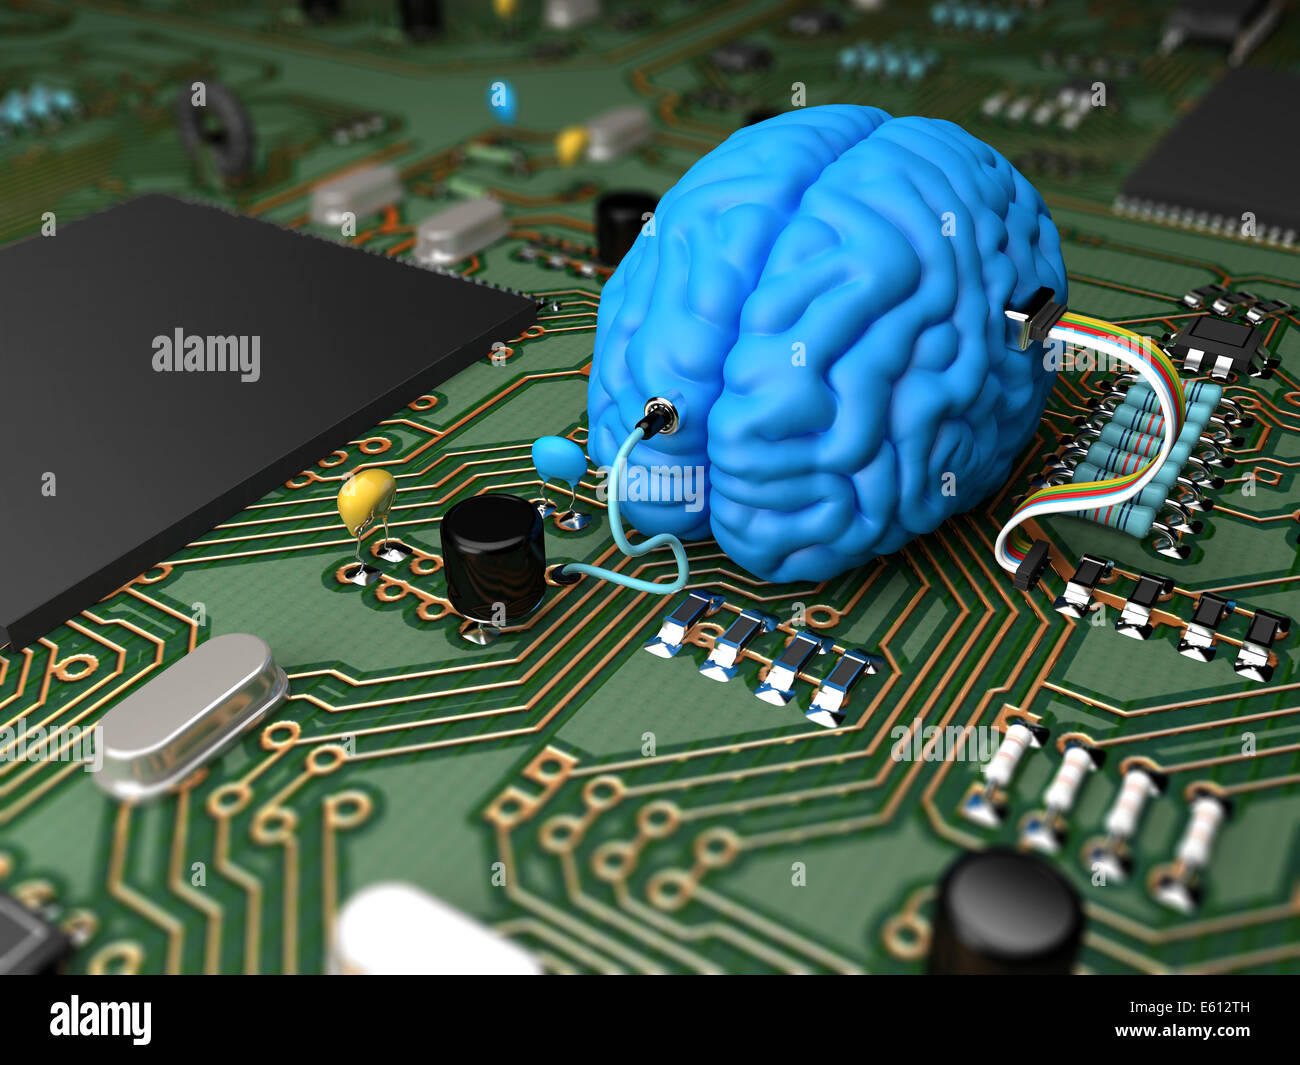 Electrical circuit with various components interfaced with a brain - Stock Image